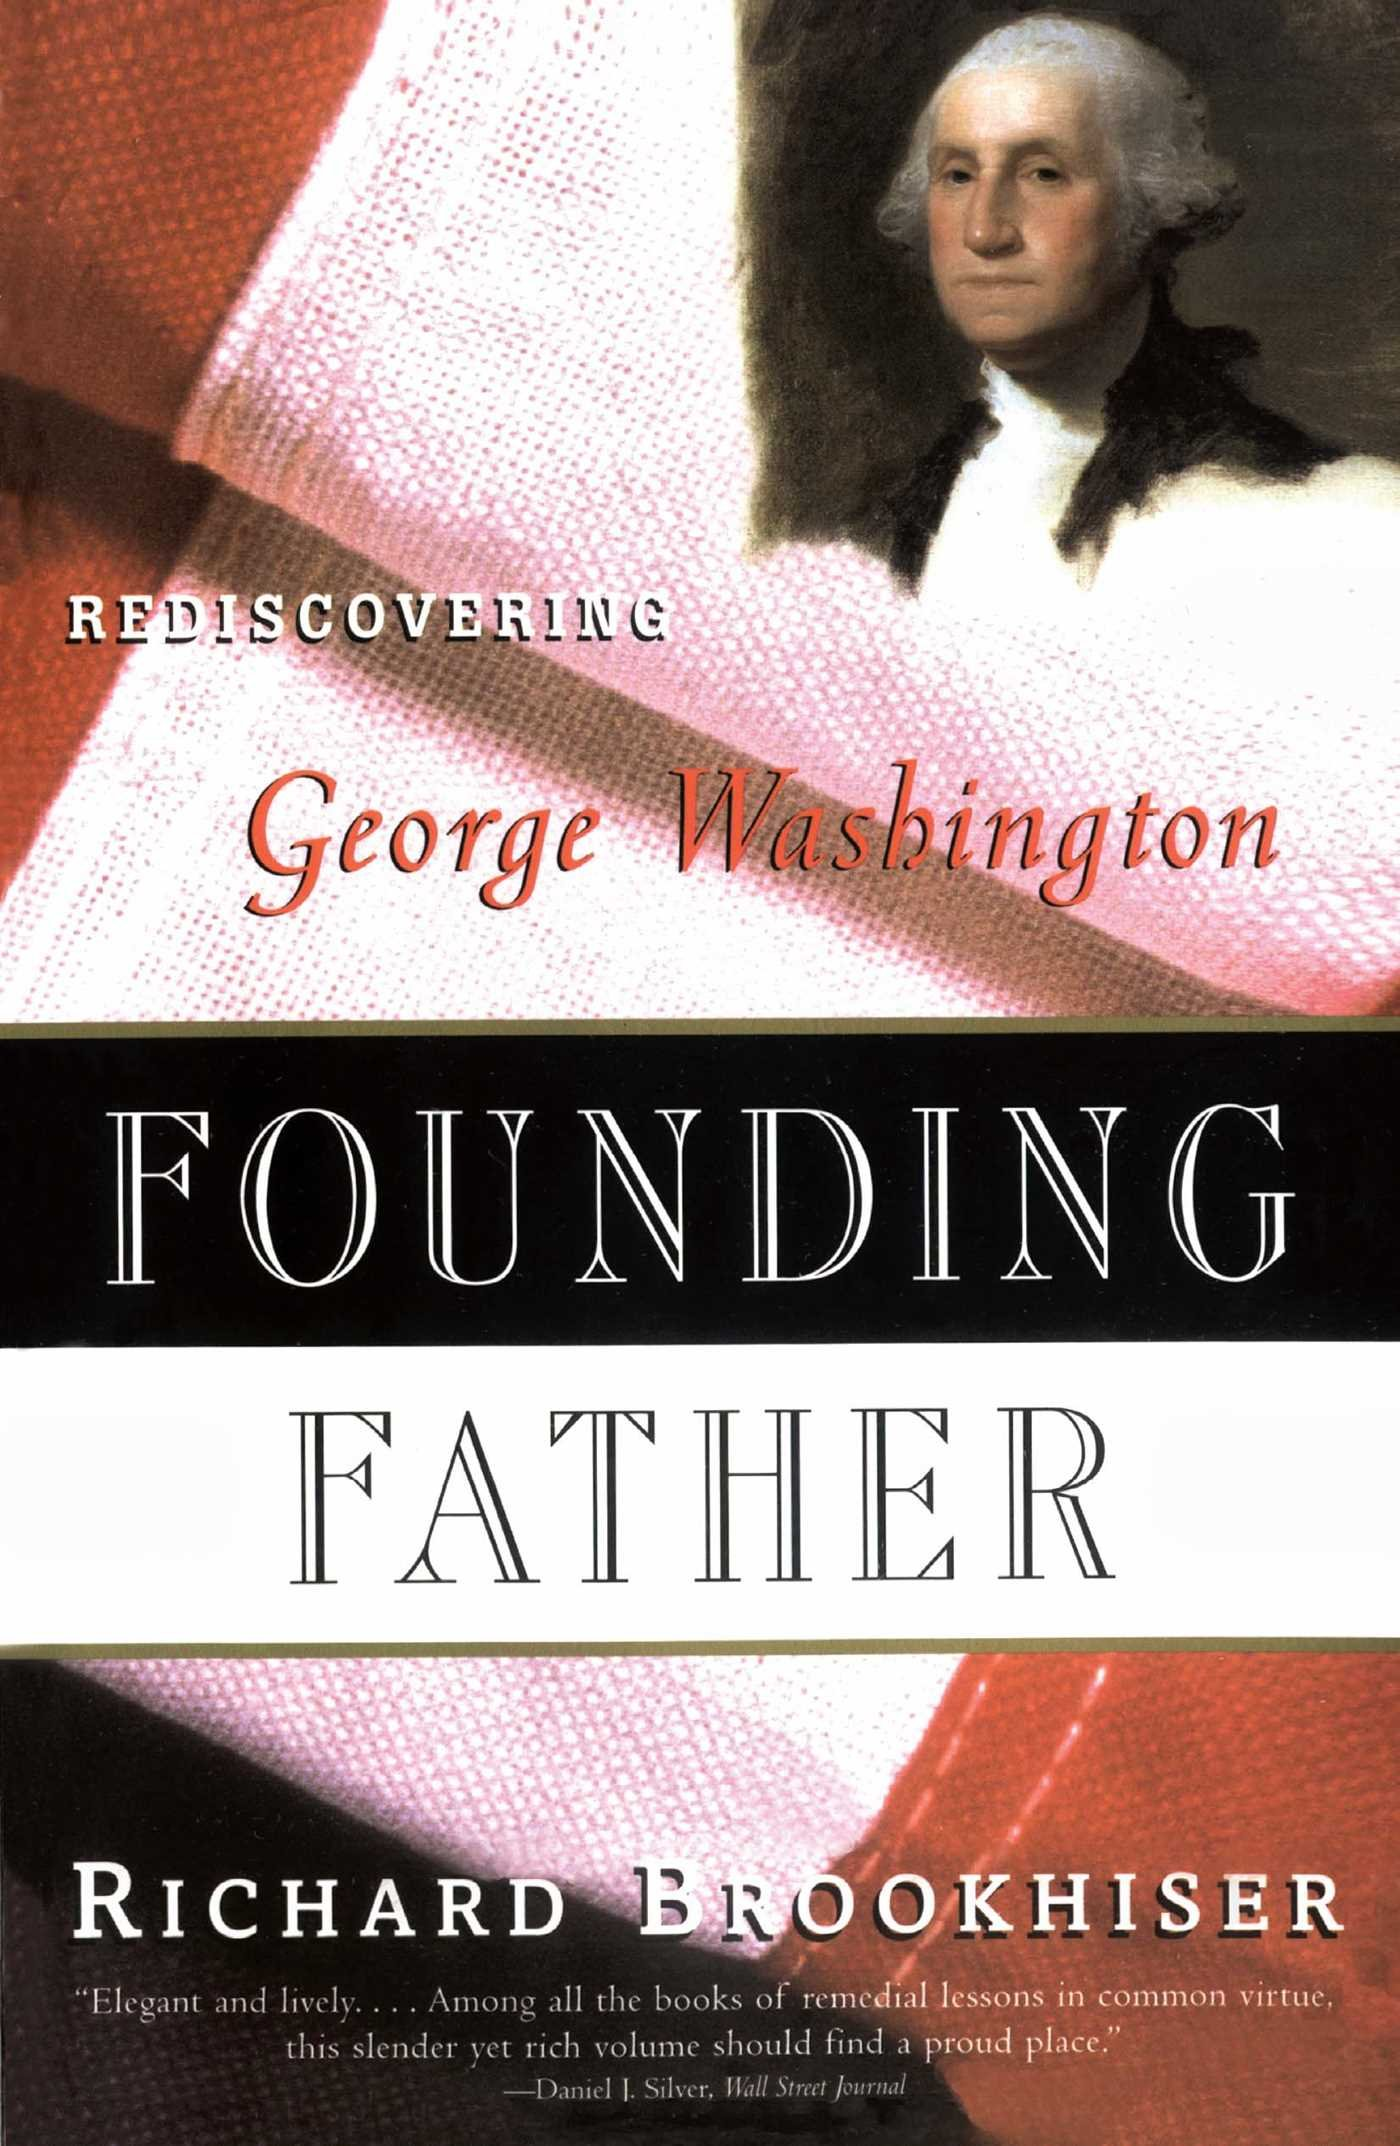 com founding father rediscovering george washington com founding father rediscovering george washington 9780684831428 richard brookhiser books